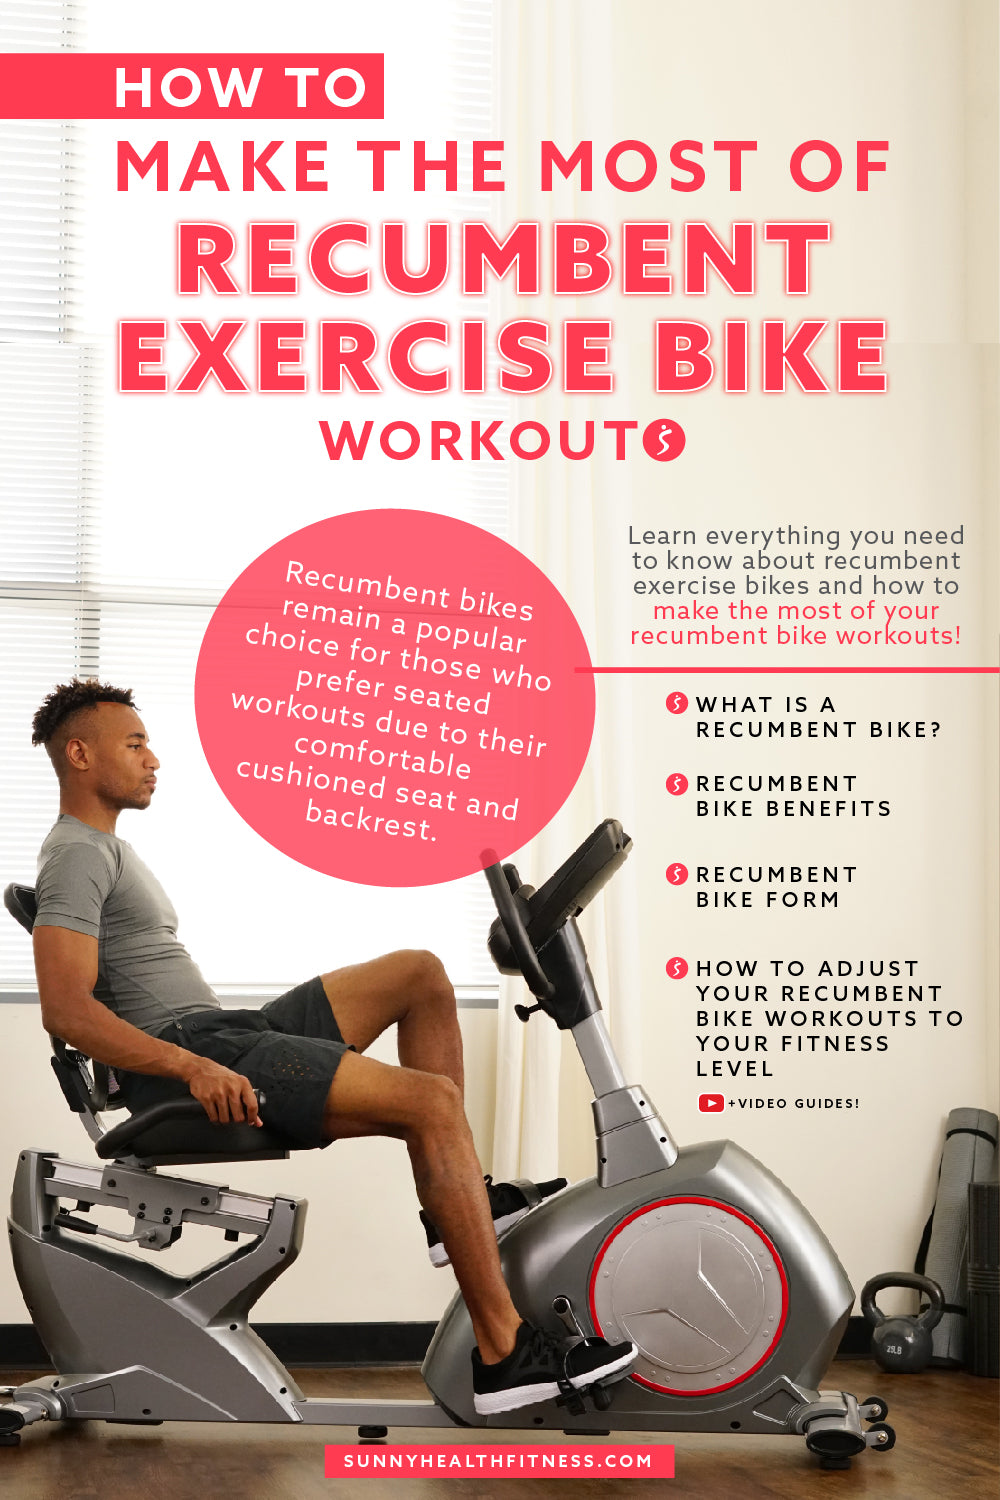 Recumbent Exercise Bike Workouts Infographic